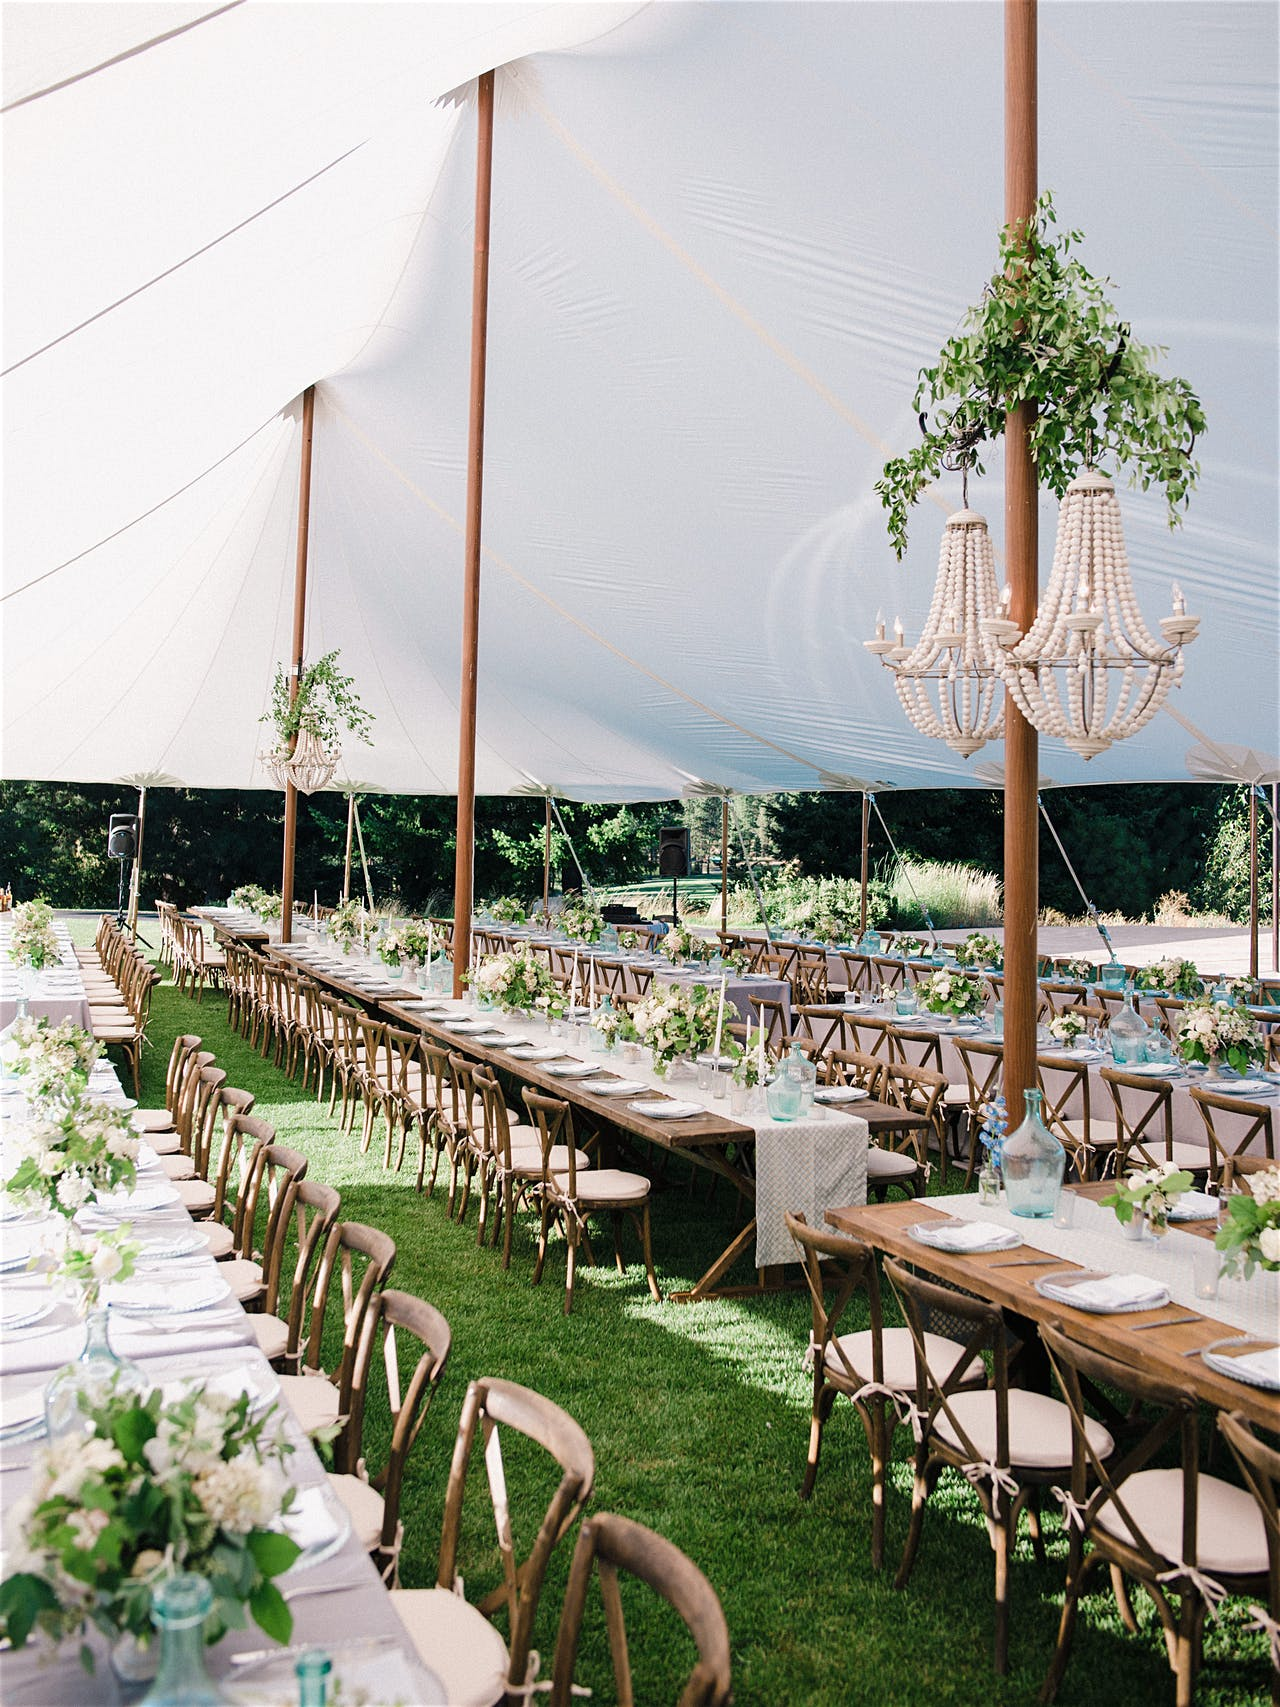 Wedding planning, design plan, floral and decor by Kaleb Norman James Design. Photography by Ryan Flynn Photo.